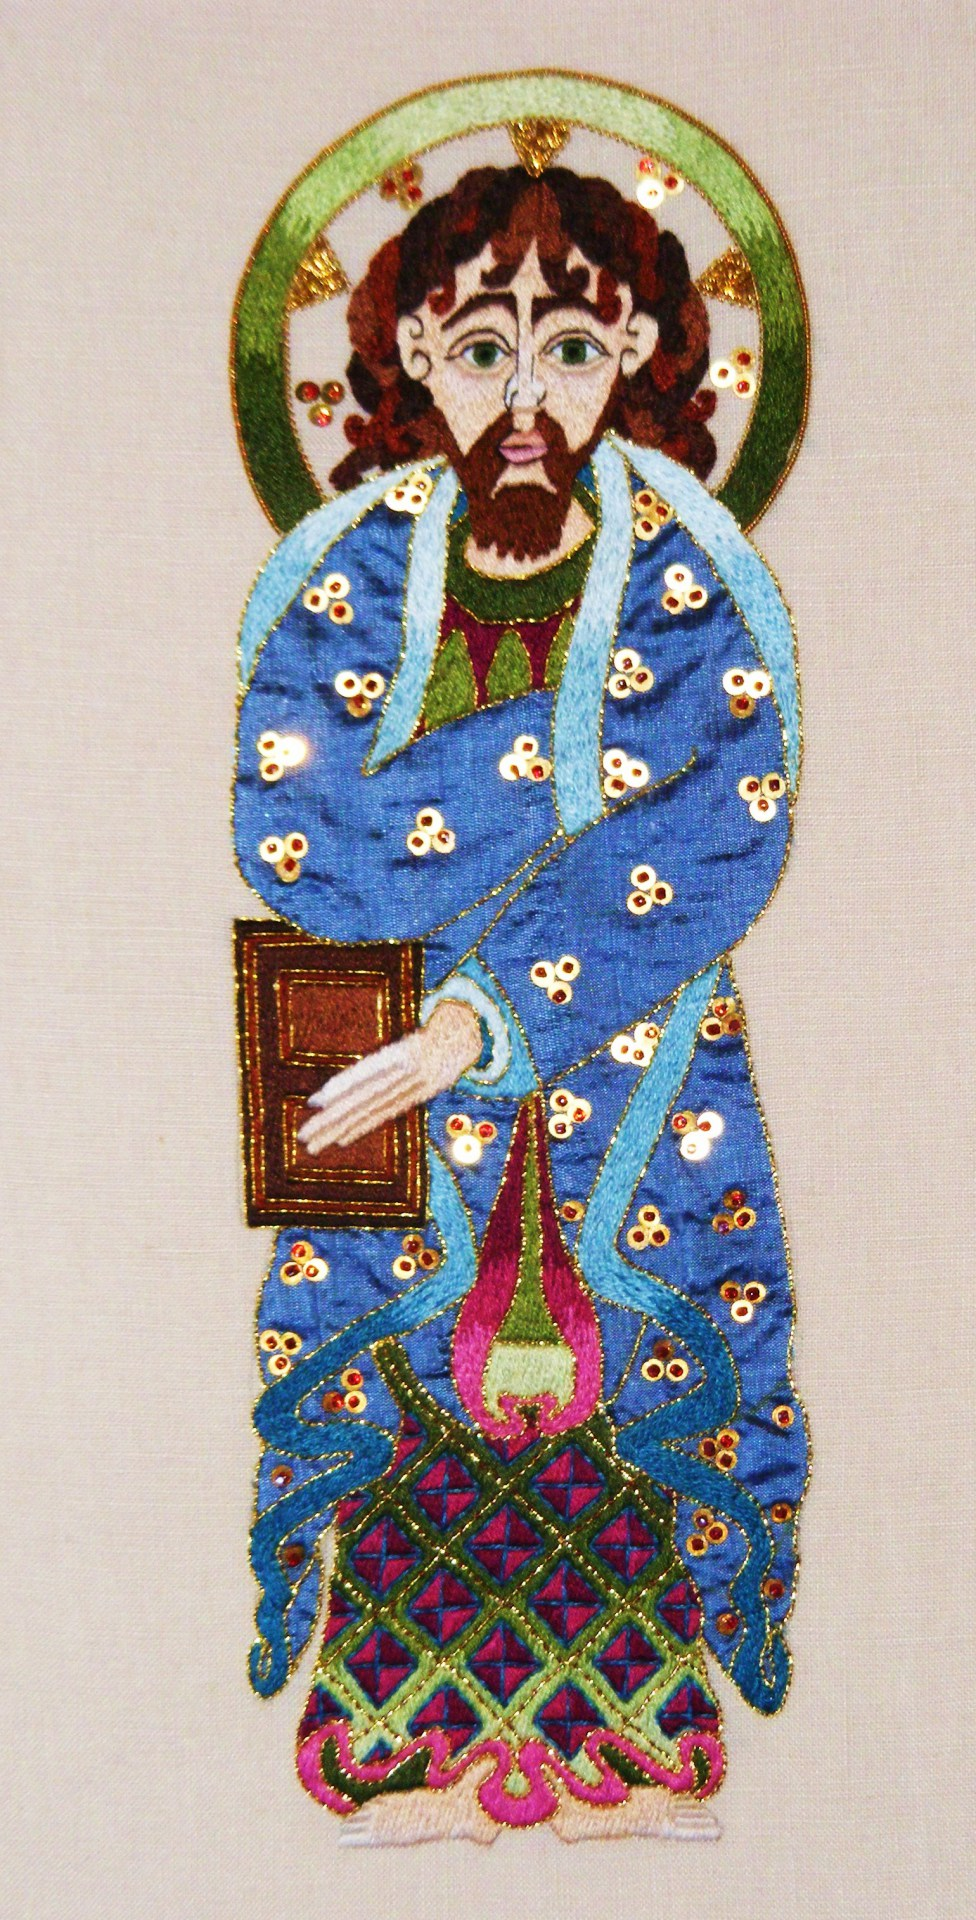 Saint Matthew from the Book of Kells in appliqué and surface stitching with gold &bead detailing